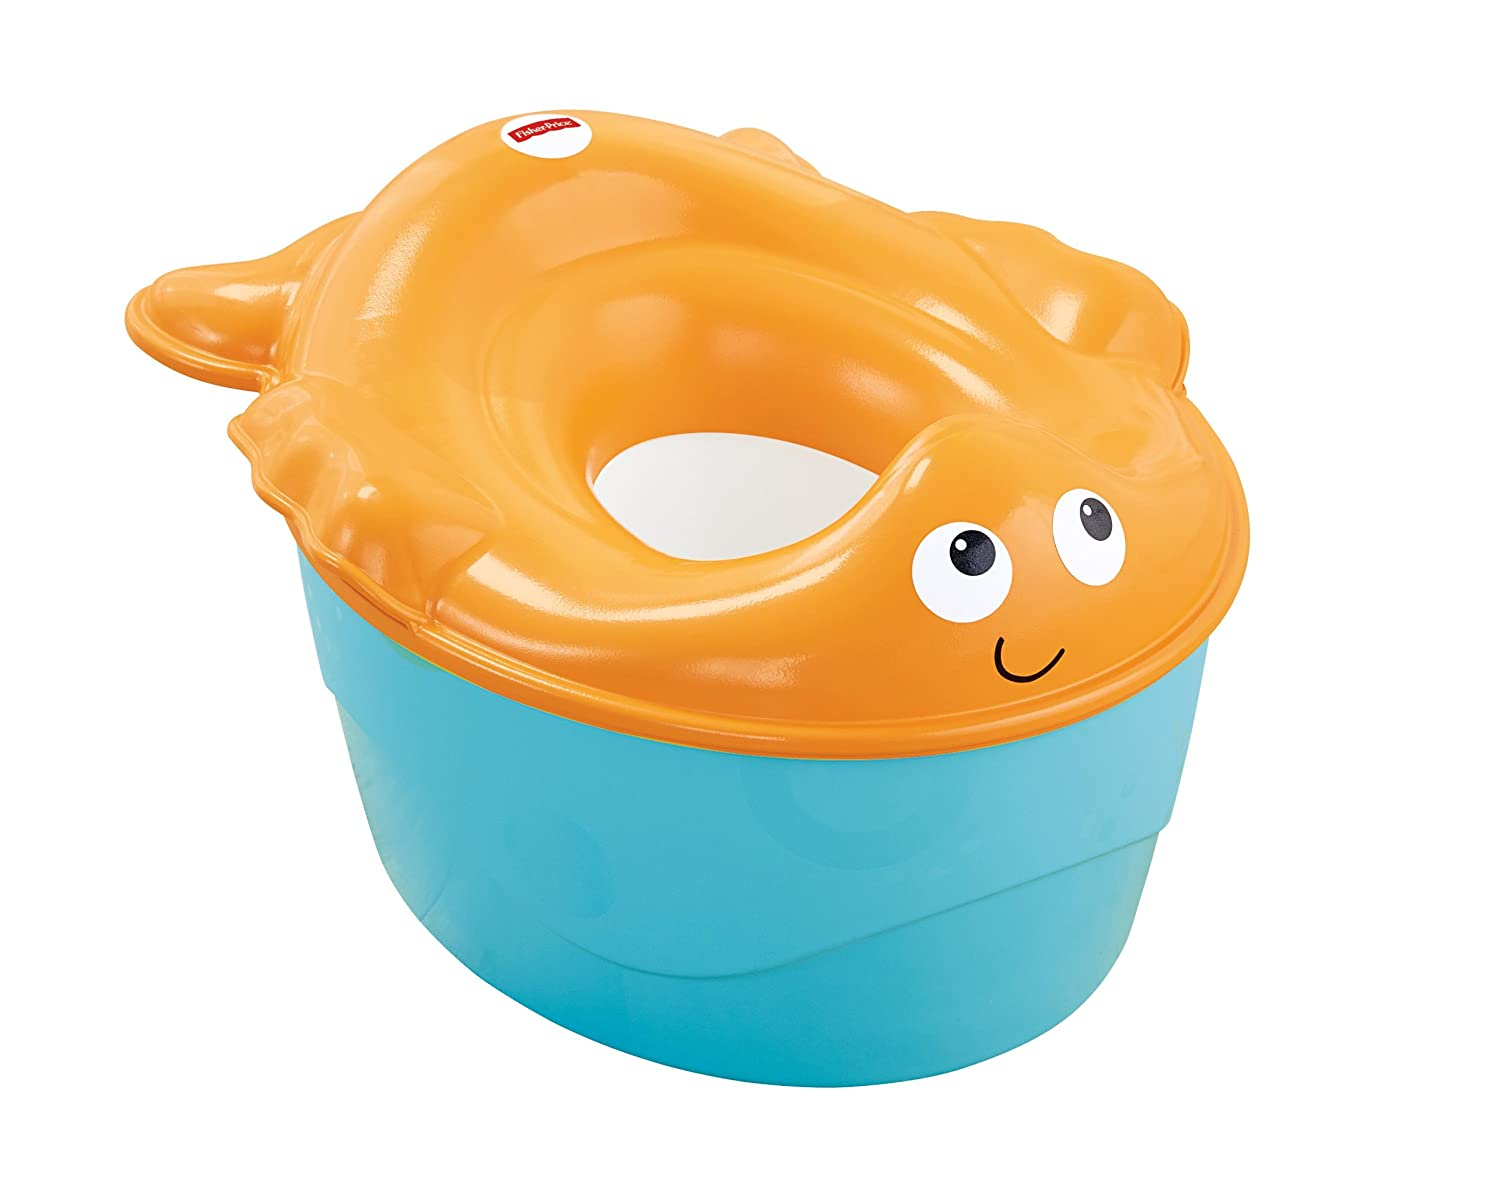 Fisher-Price 3-in-1 Potty, Goldfish Fun (Discontinued by Manufacturer) X7310